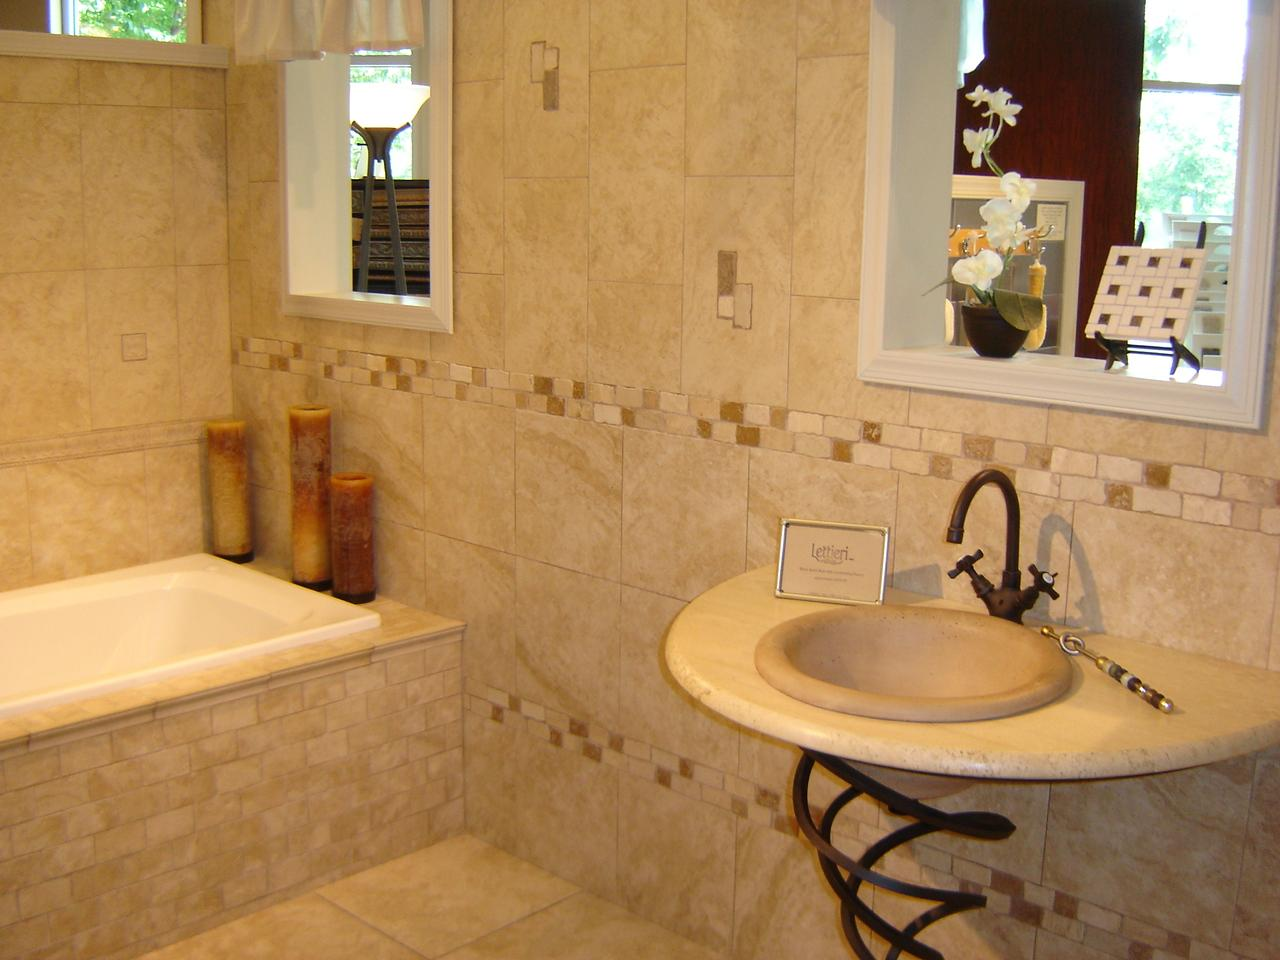 Bathroom tile design ideas Bathroom tile gallery